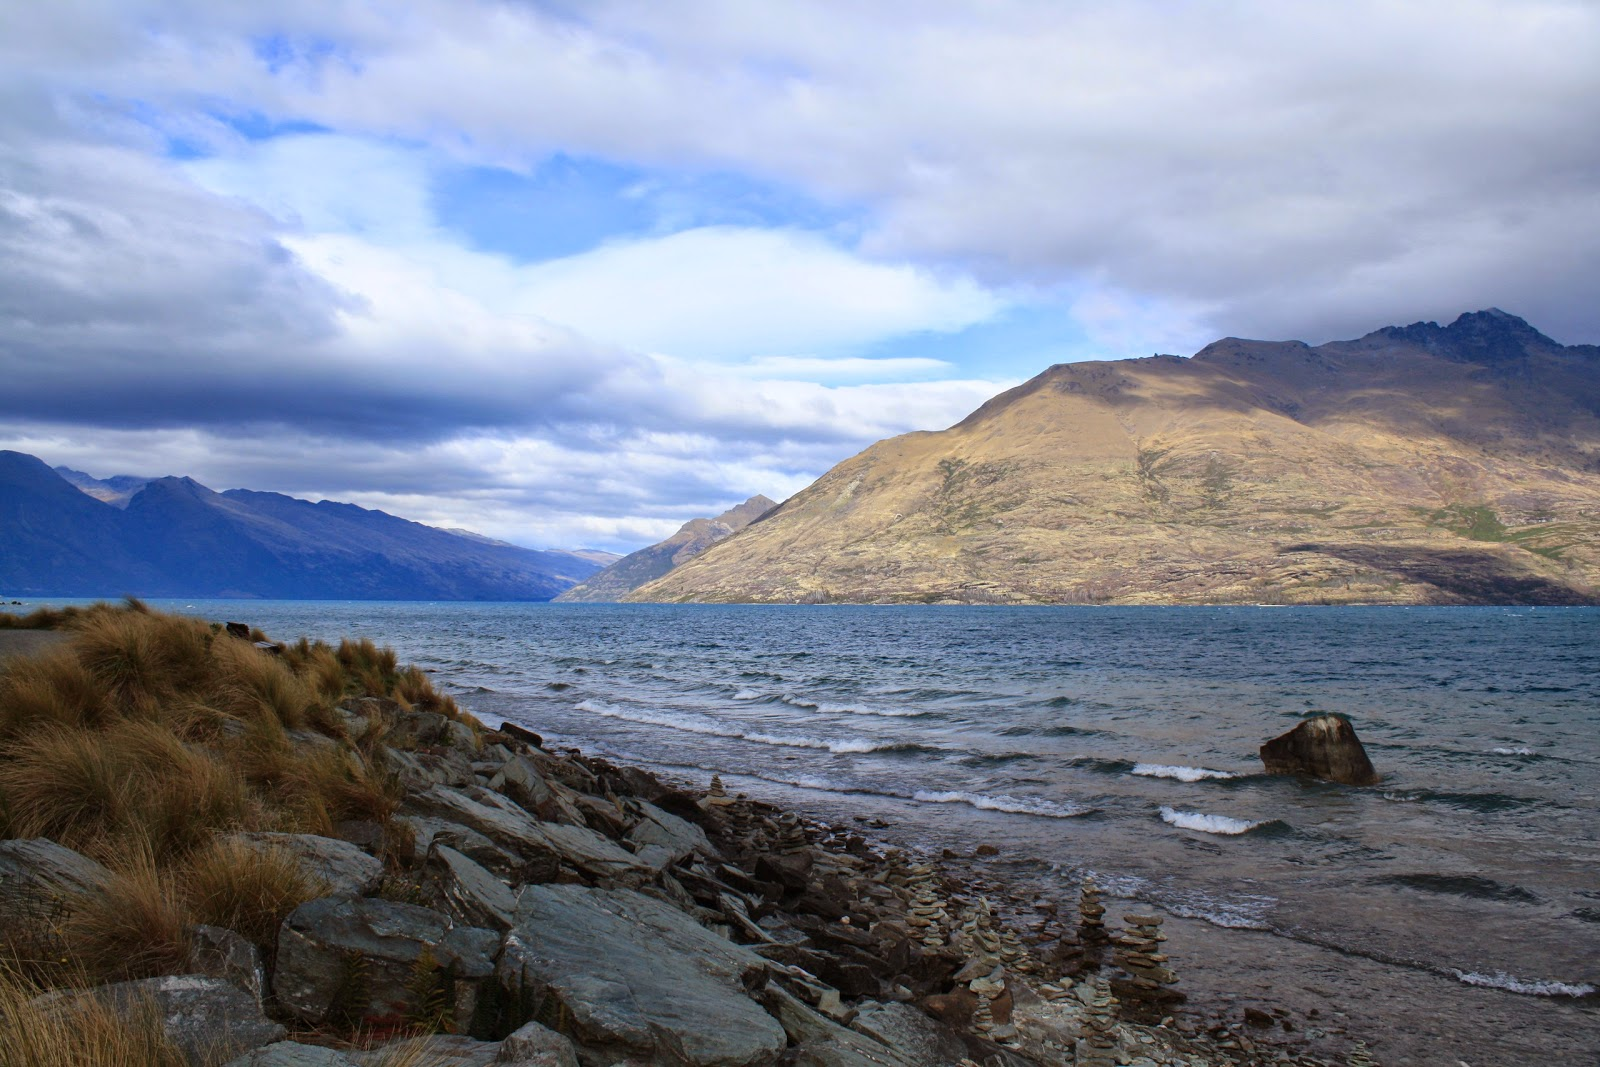 The shores of Lake Wakatipu, Queenstown, South Island.